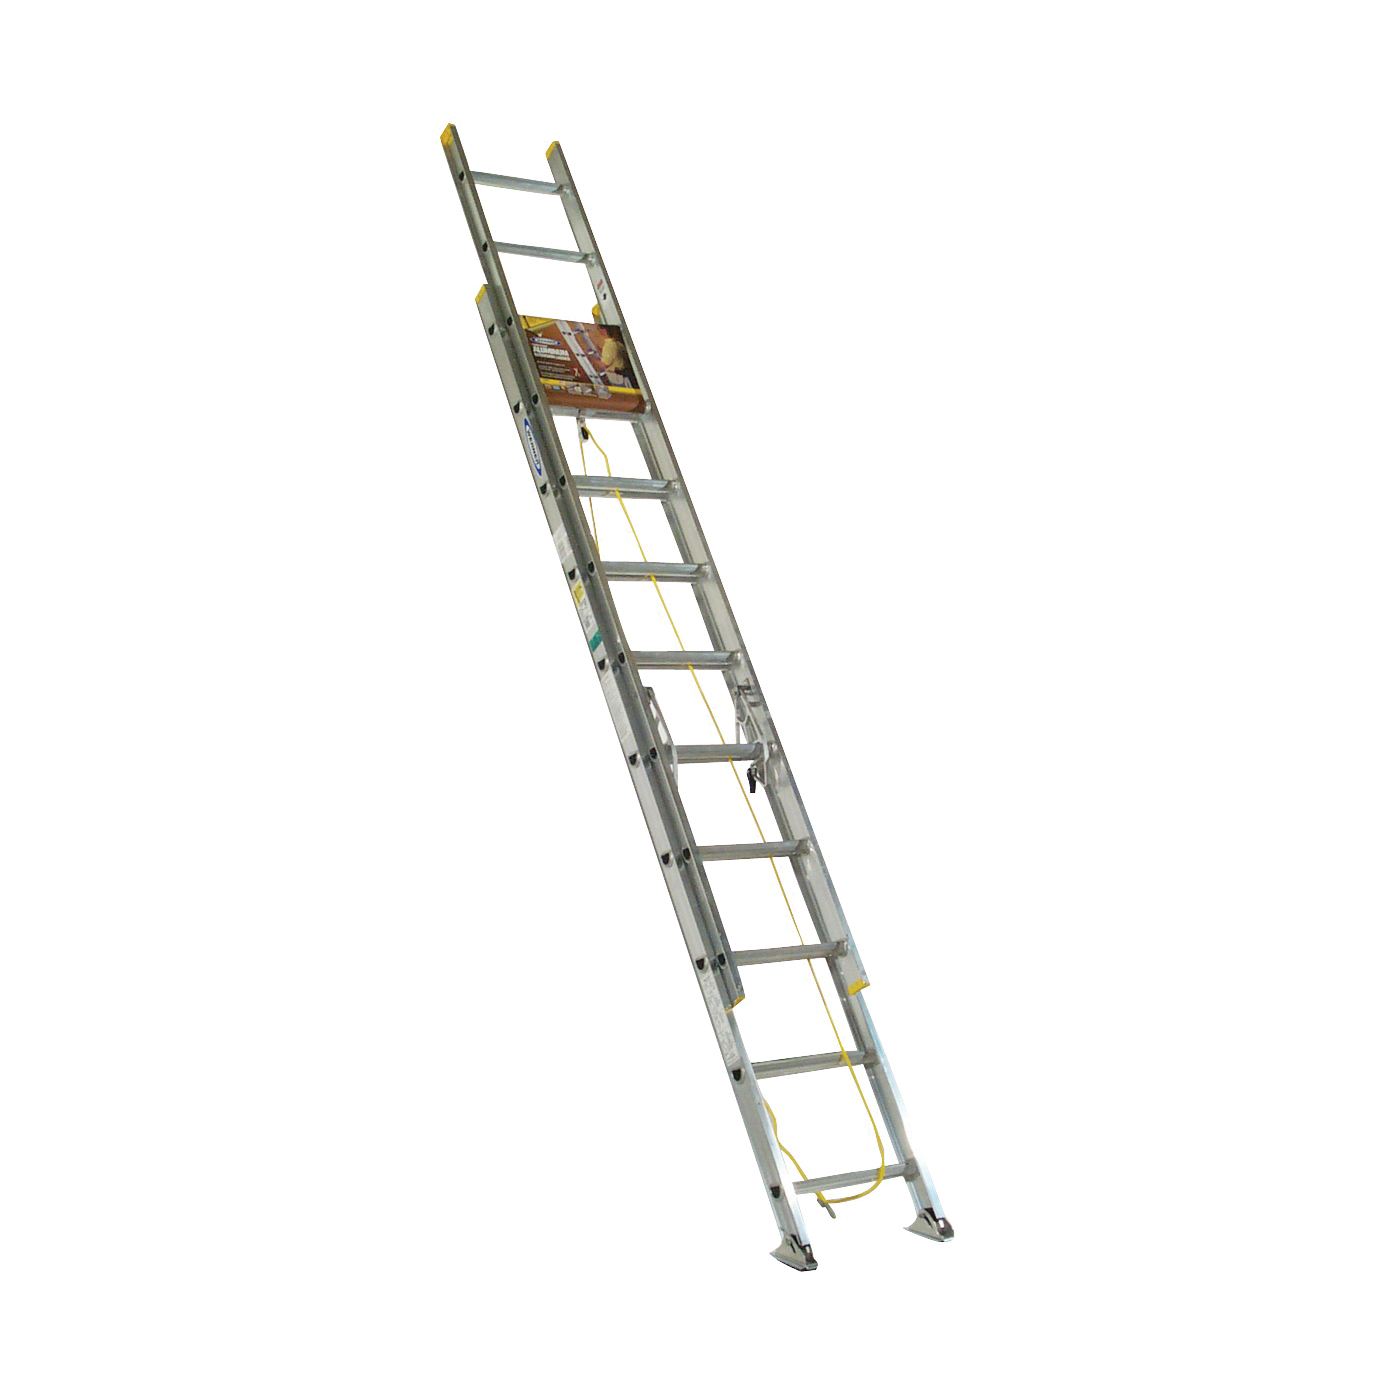 Picture of WERNER D1220-2 Extension Ladder, 19 ft H Reach, 225 lb, Aluminum